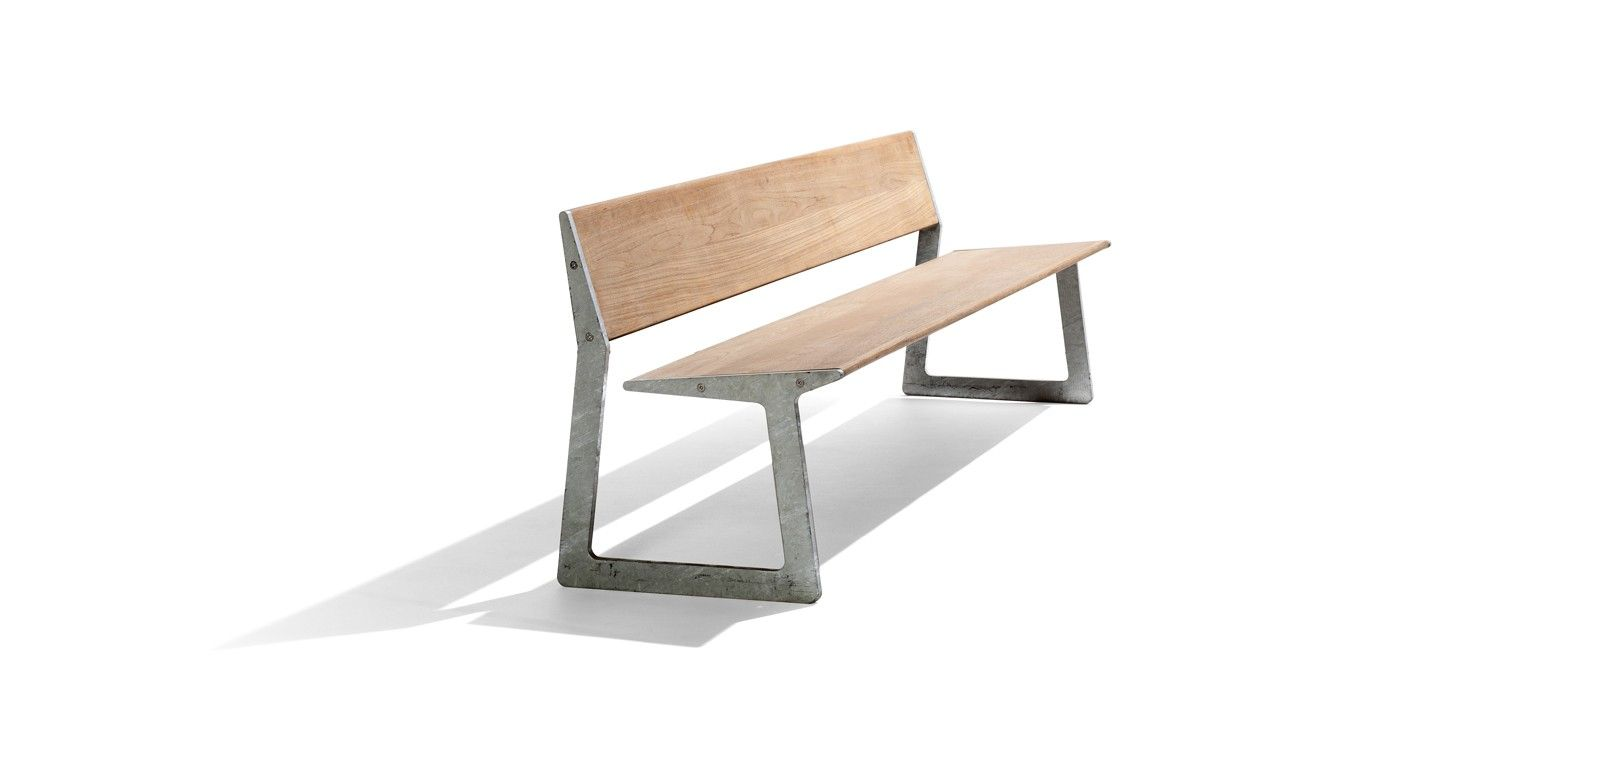 Old Teakholz Bank Bird Bench Tribù Retail Merchandising Pinterest Bench